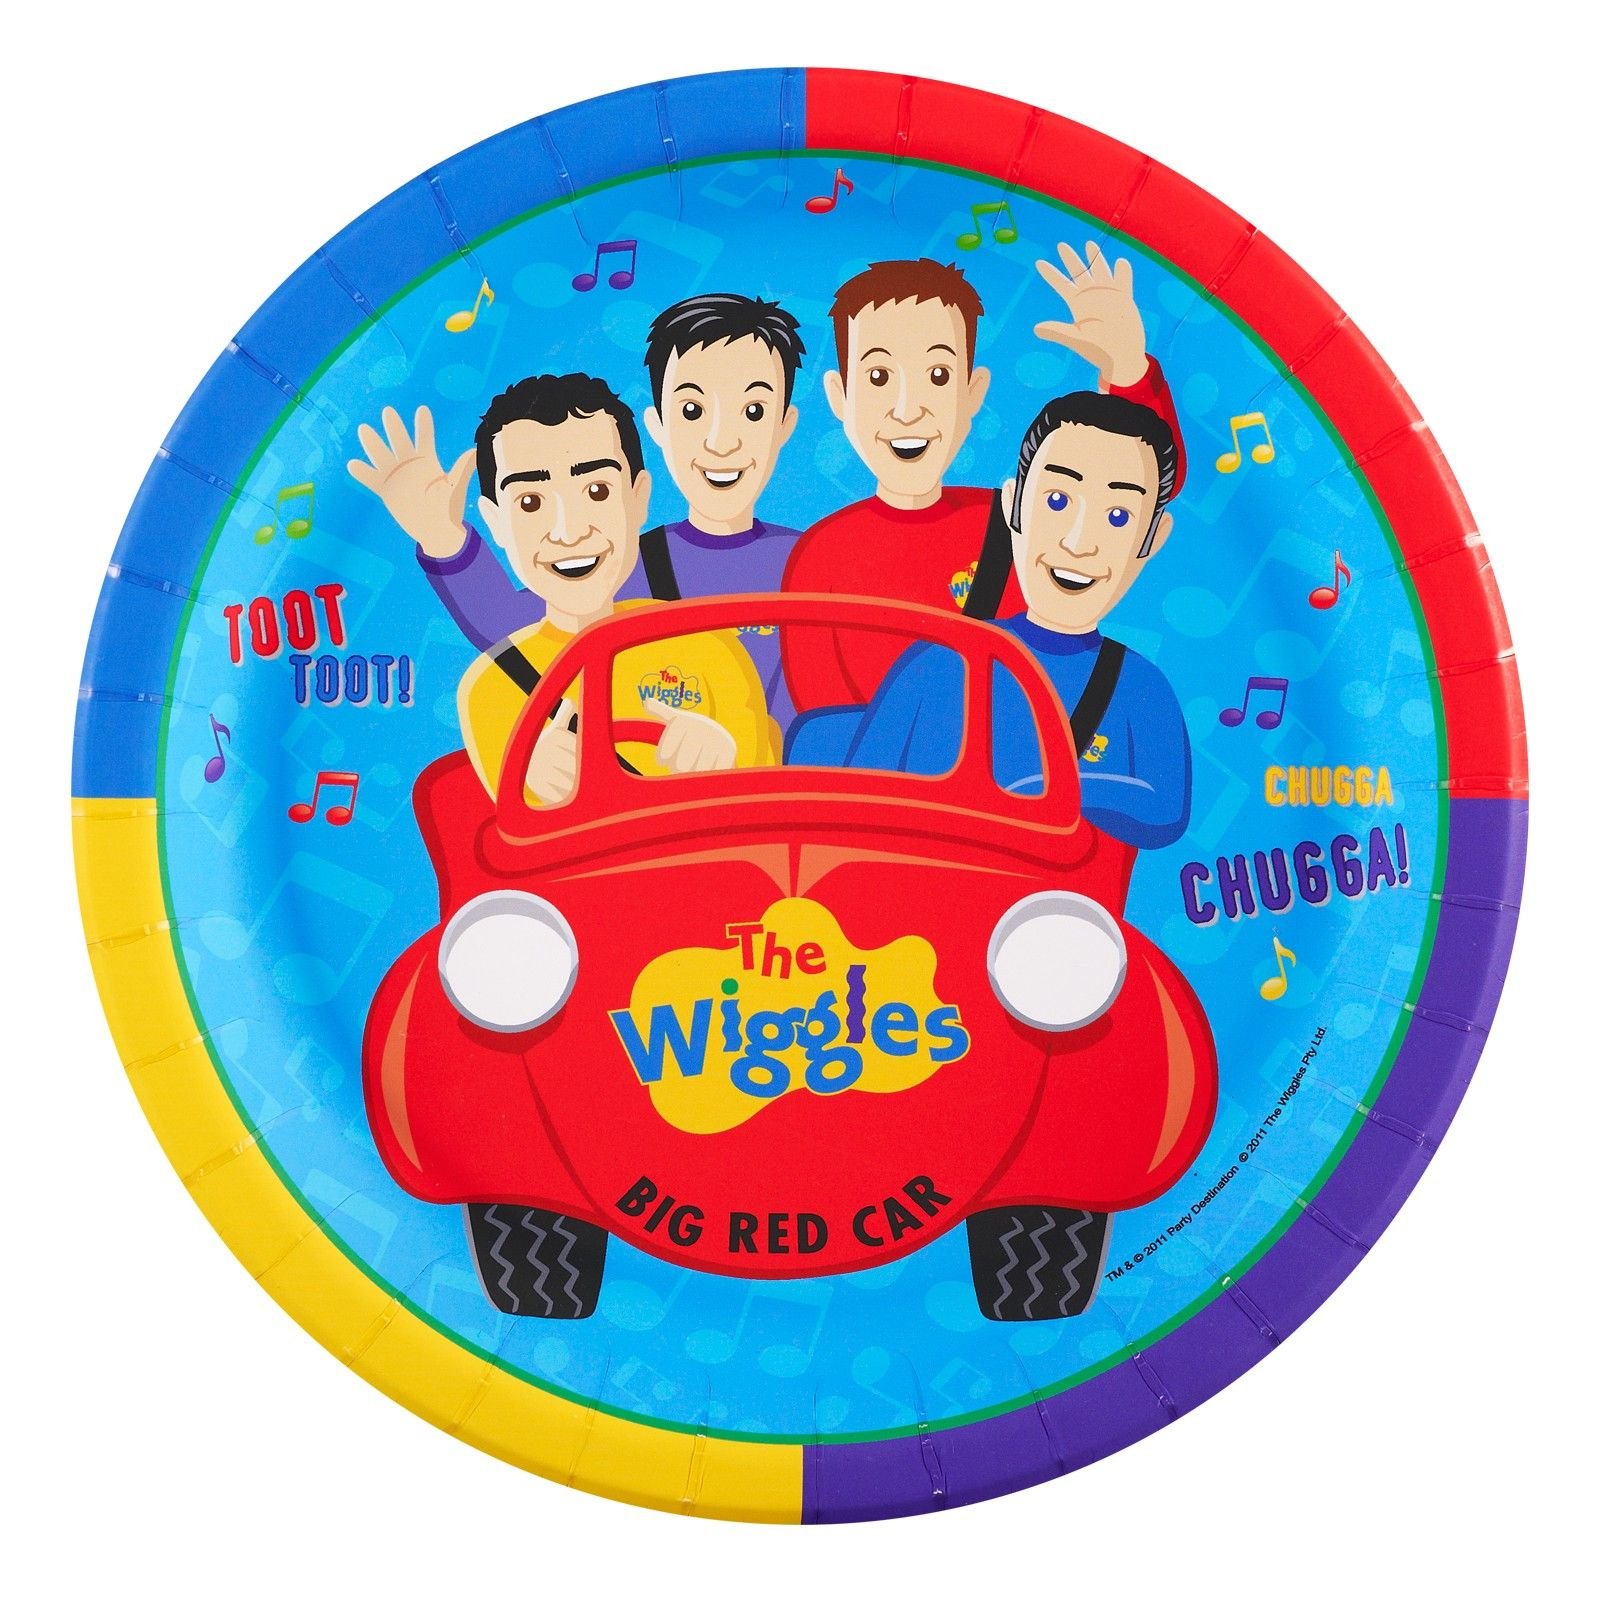 The Wiggles Birthday Party Fun The Wiggles Edible Cake Toppers Wiggles Birthday